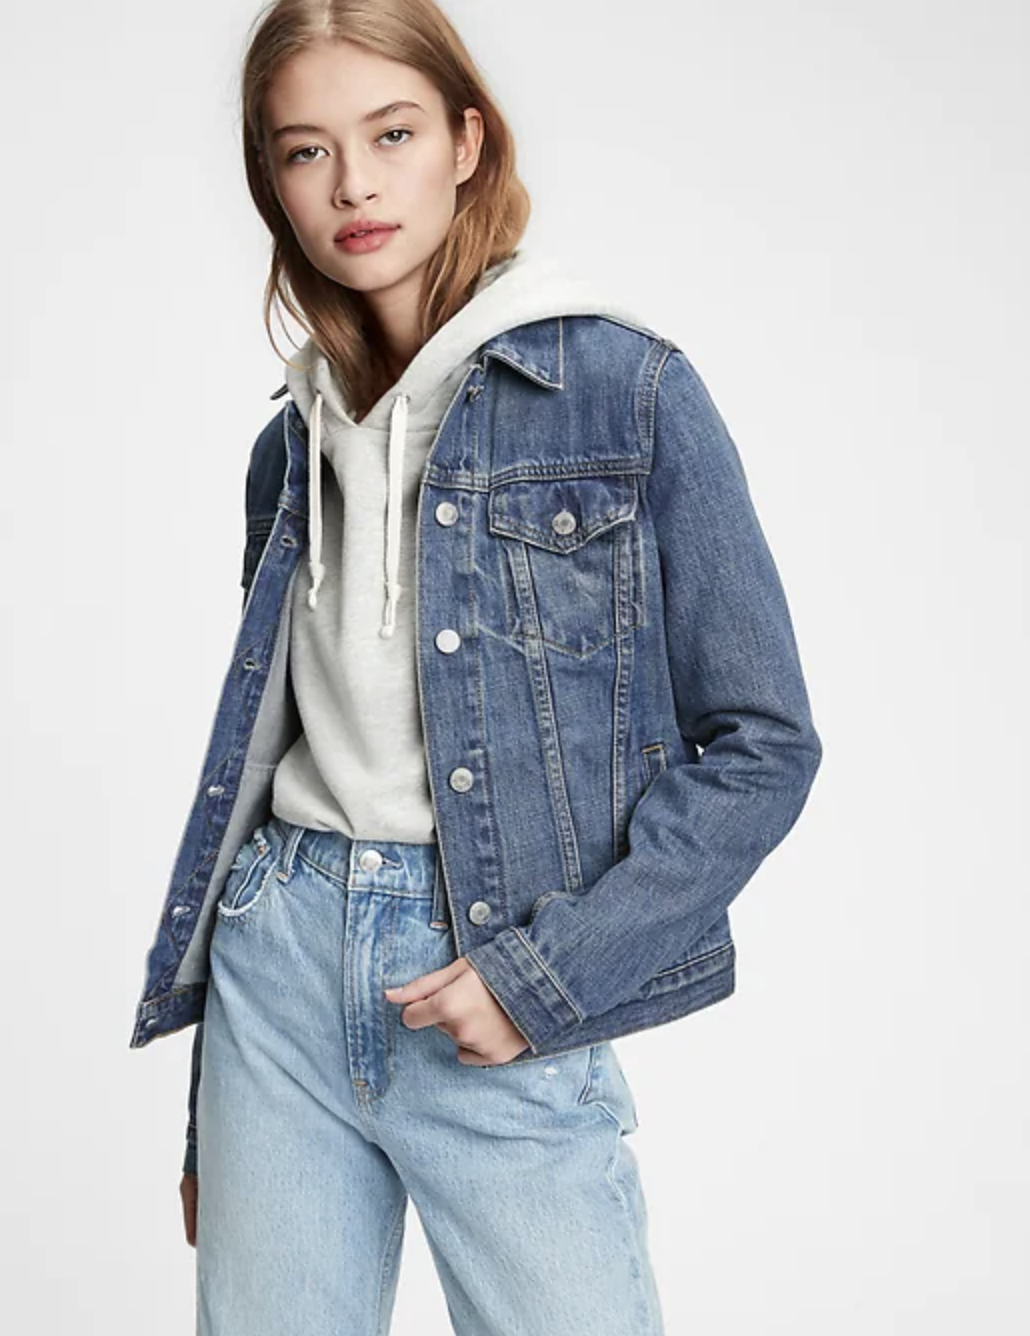 person wearing the denim jacket over a hoodie